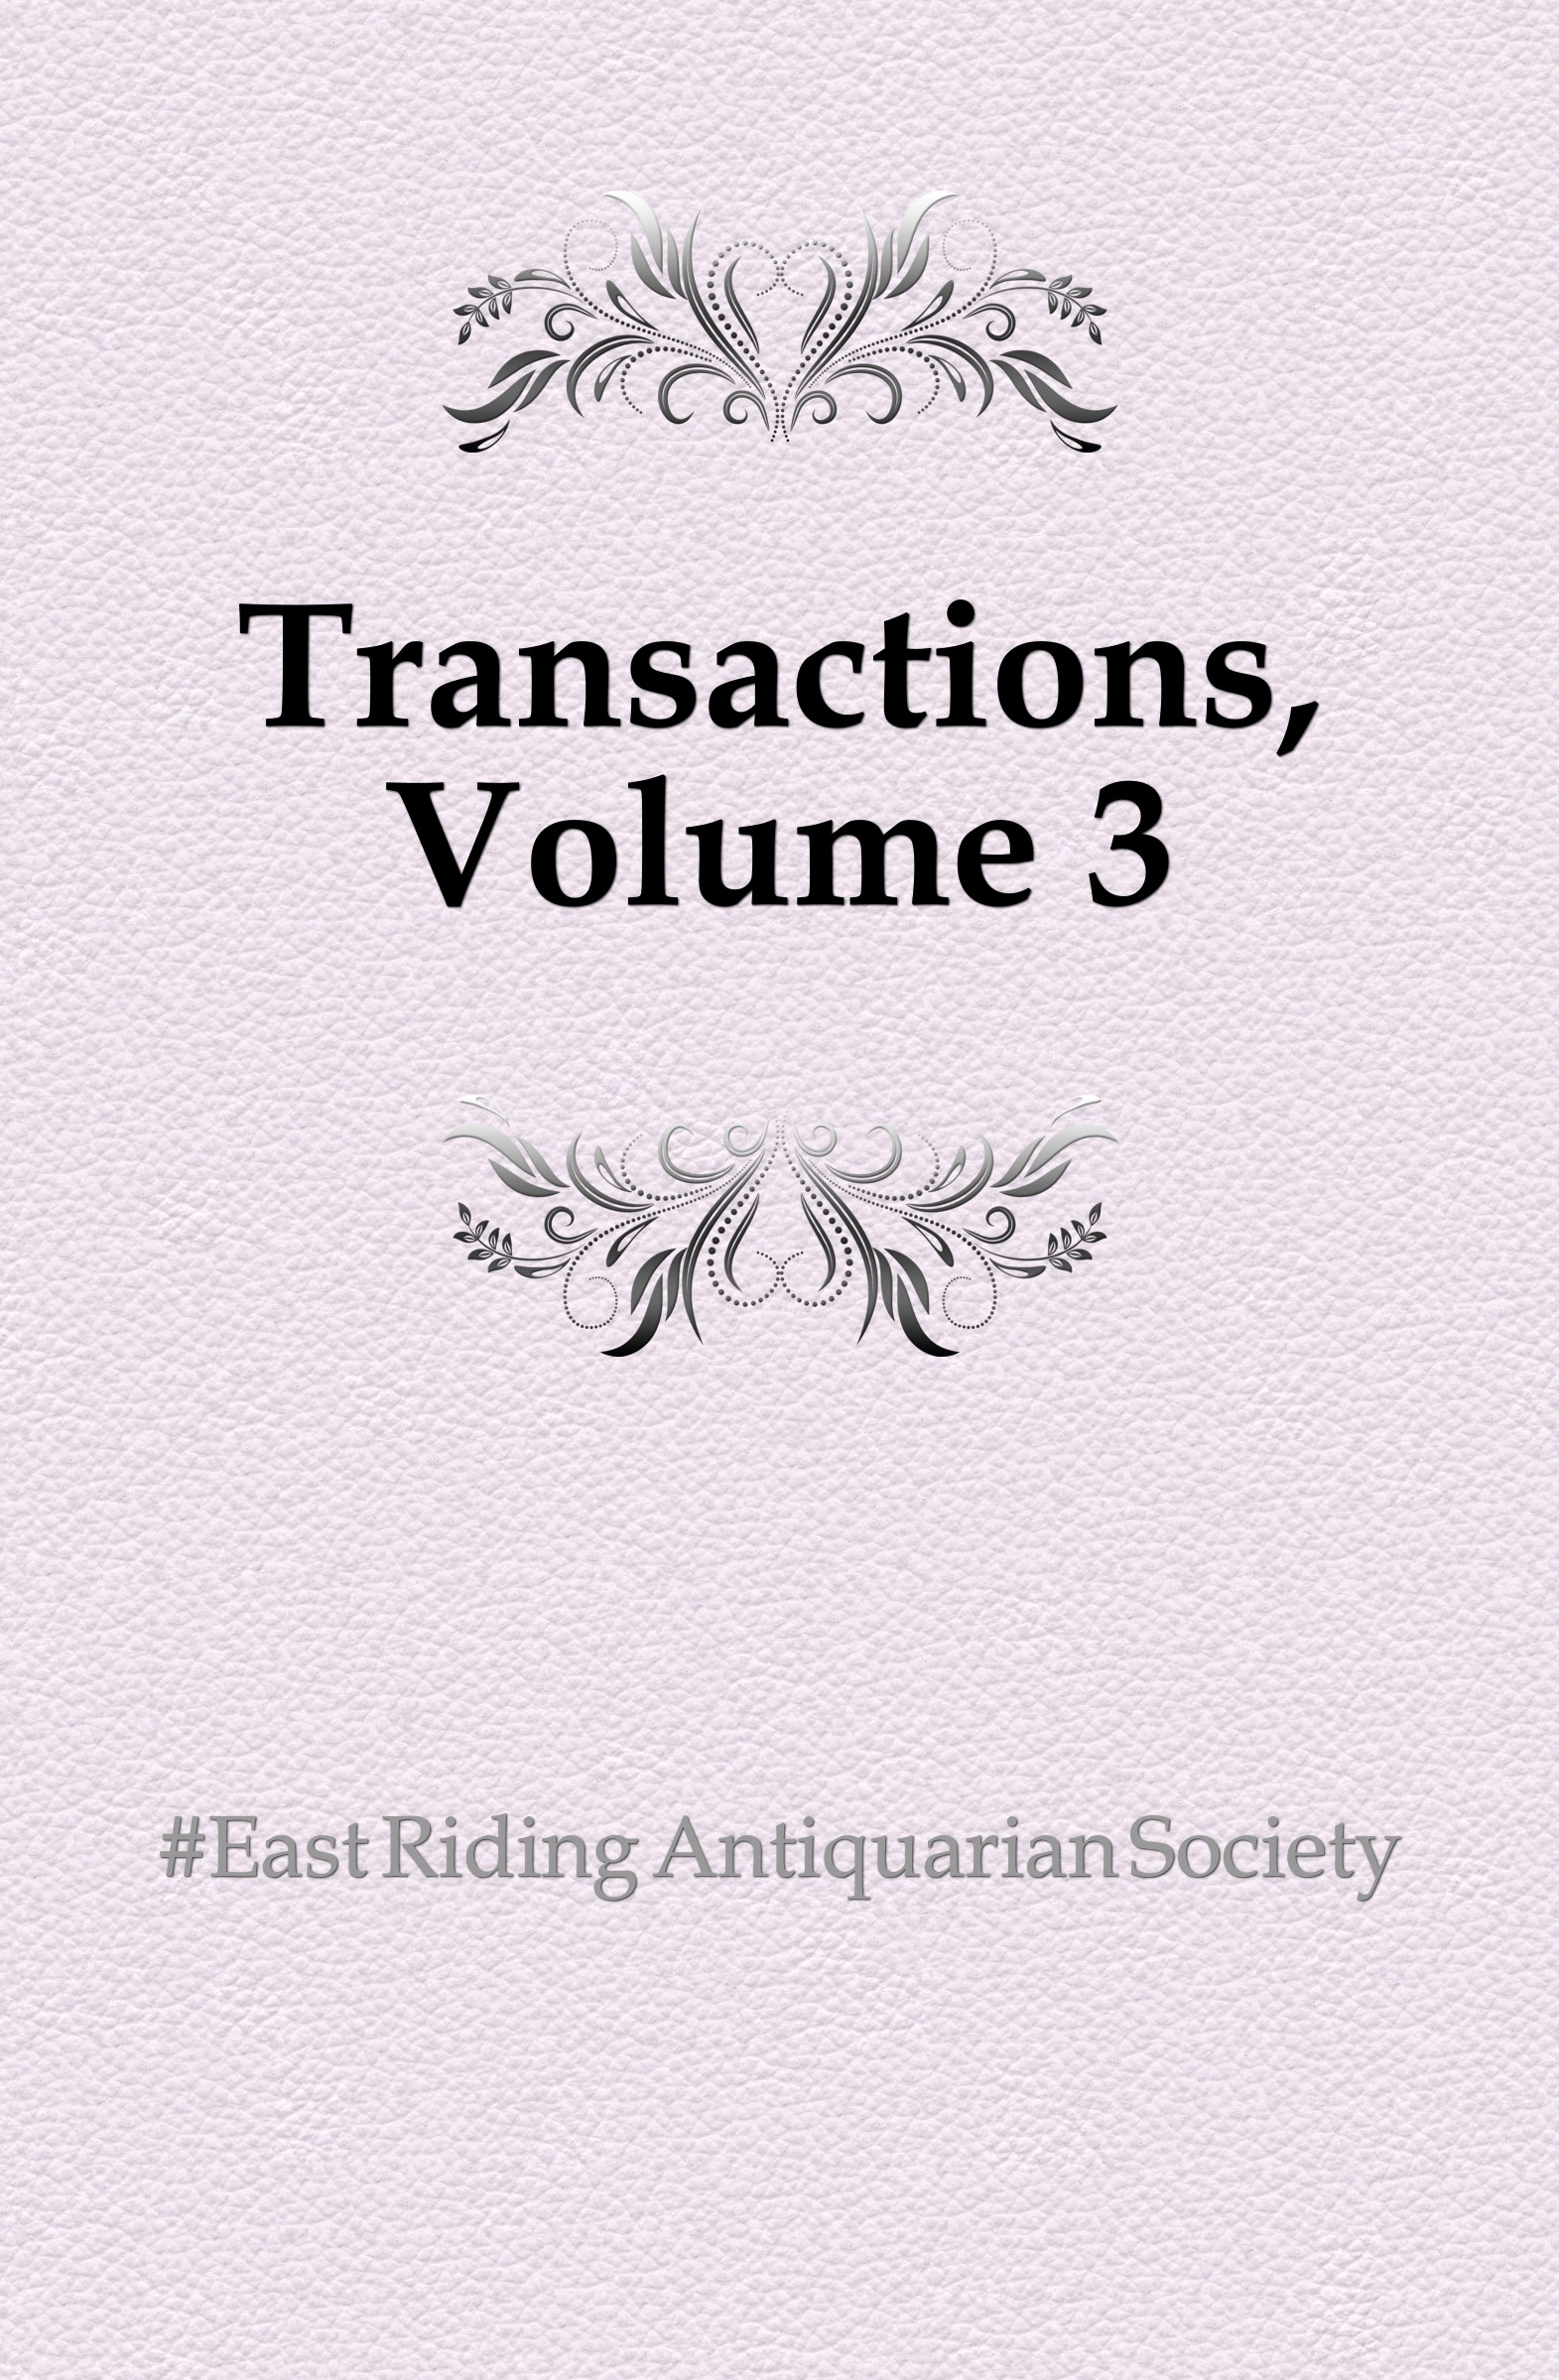 East Riding Antiquarian Society Transactions, Volume 3